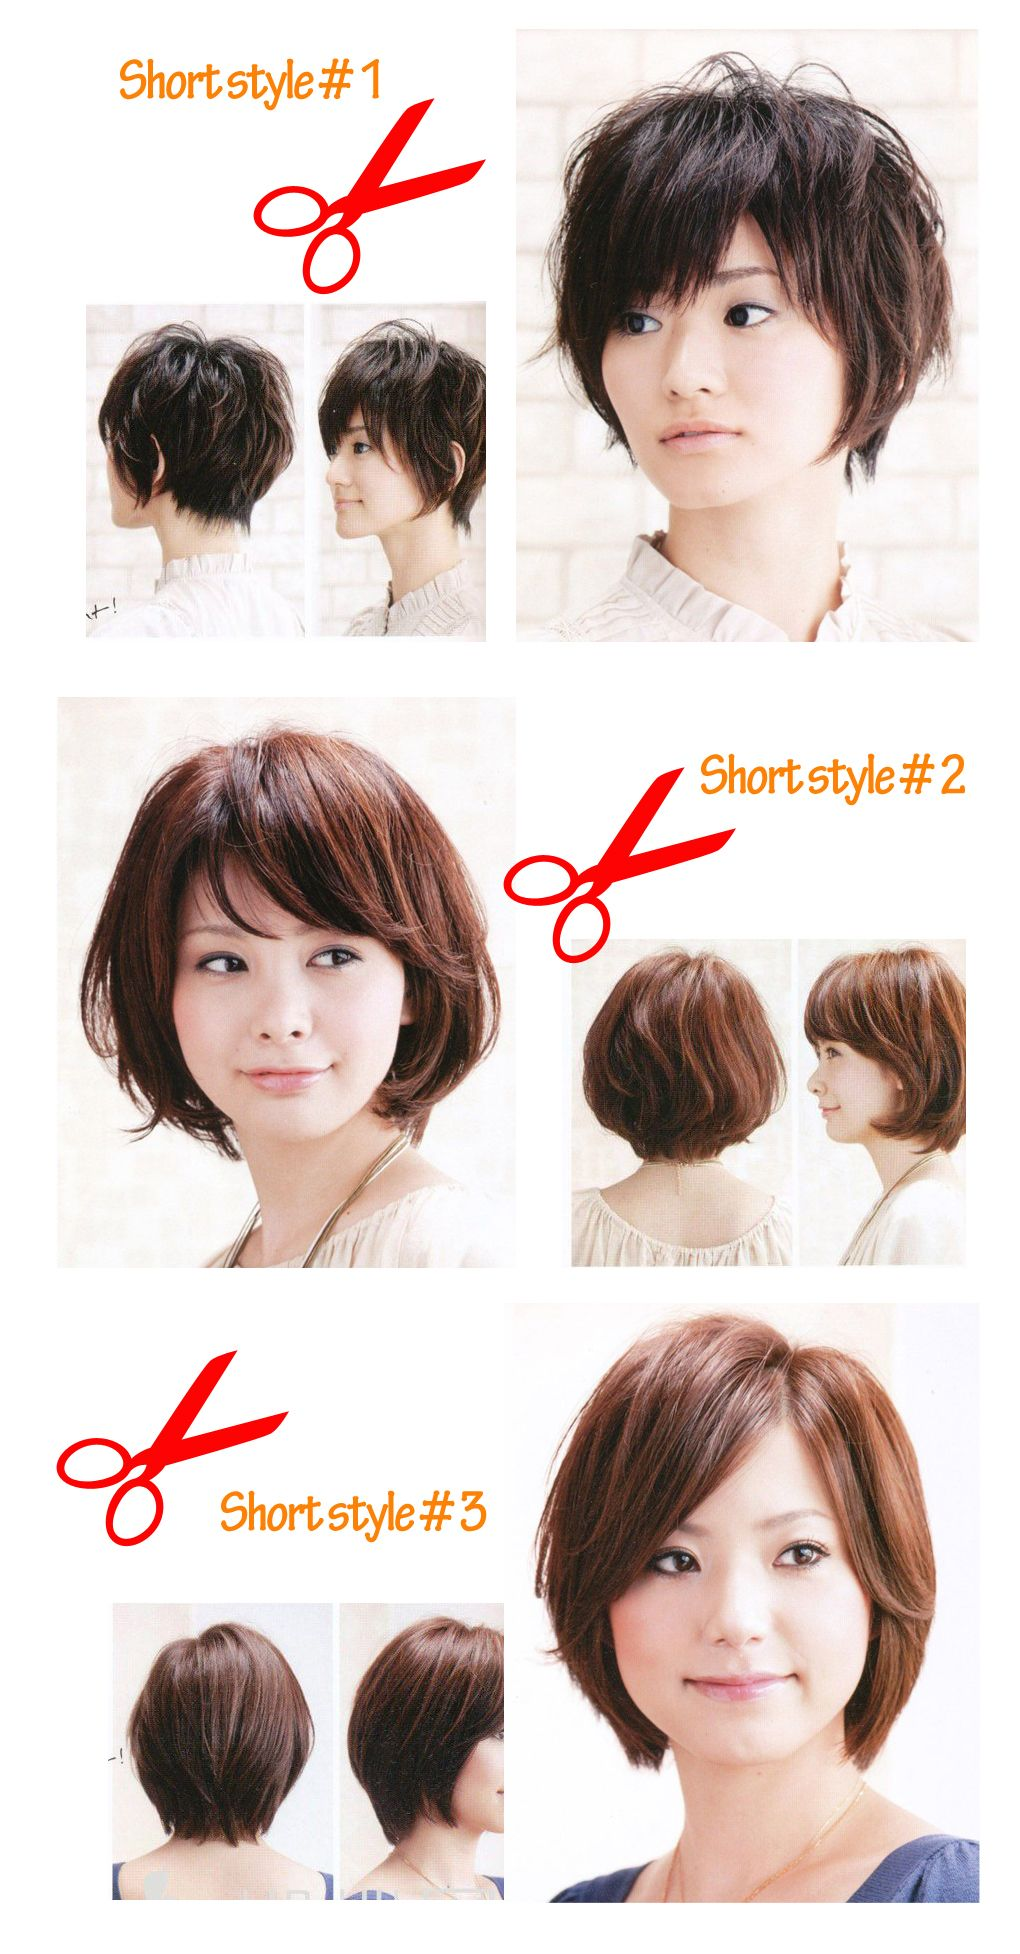 I Like The Back Of Style #1 With Maybe Longer Sides? Hair Wear